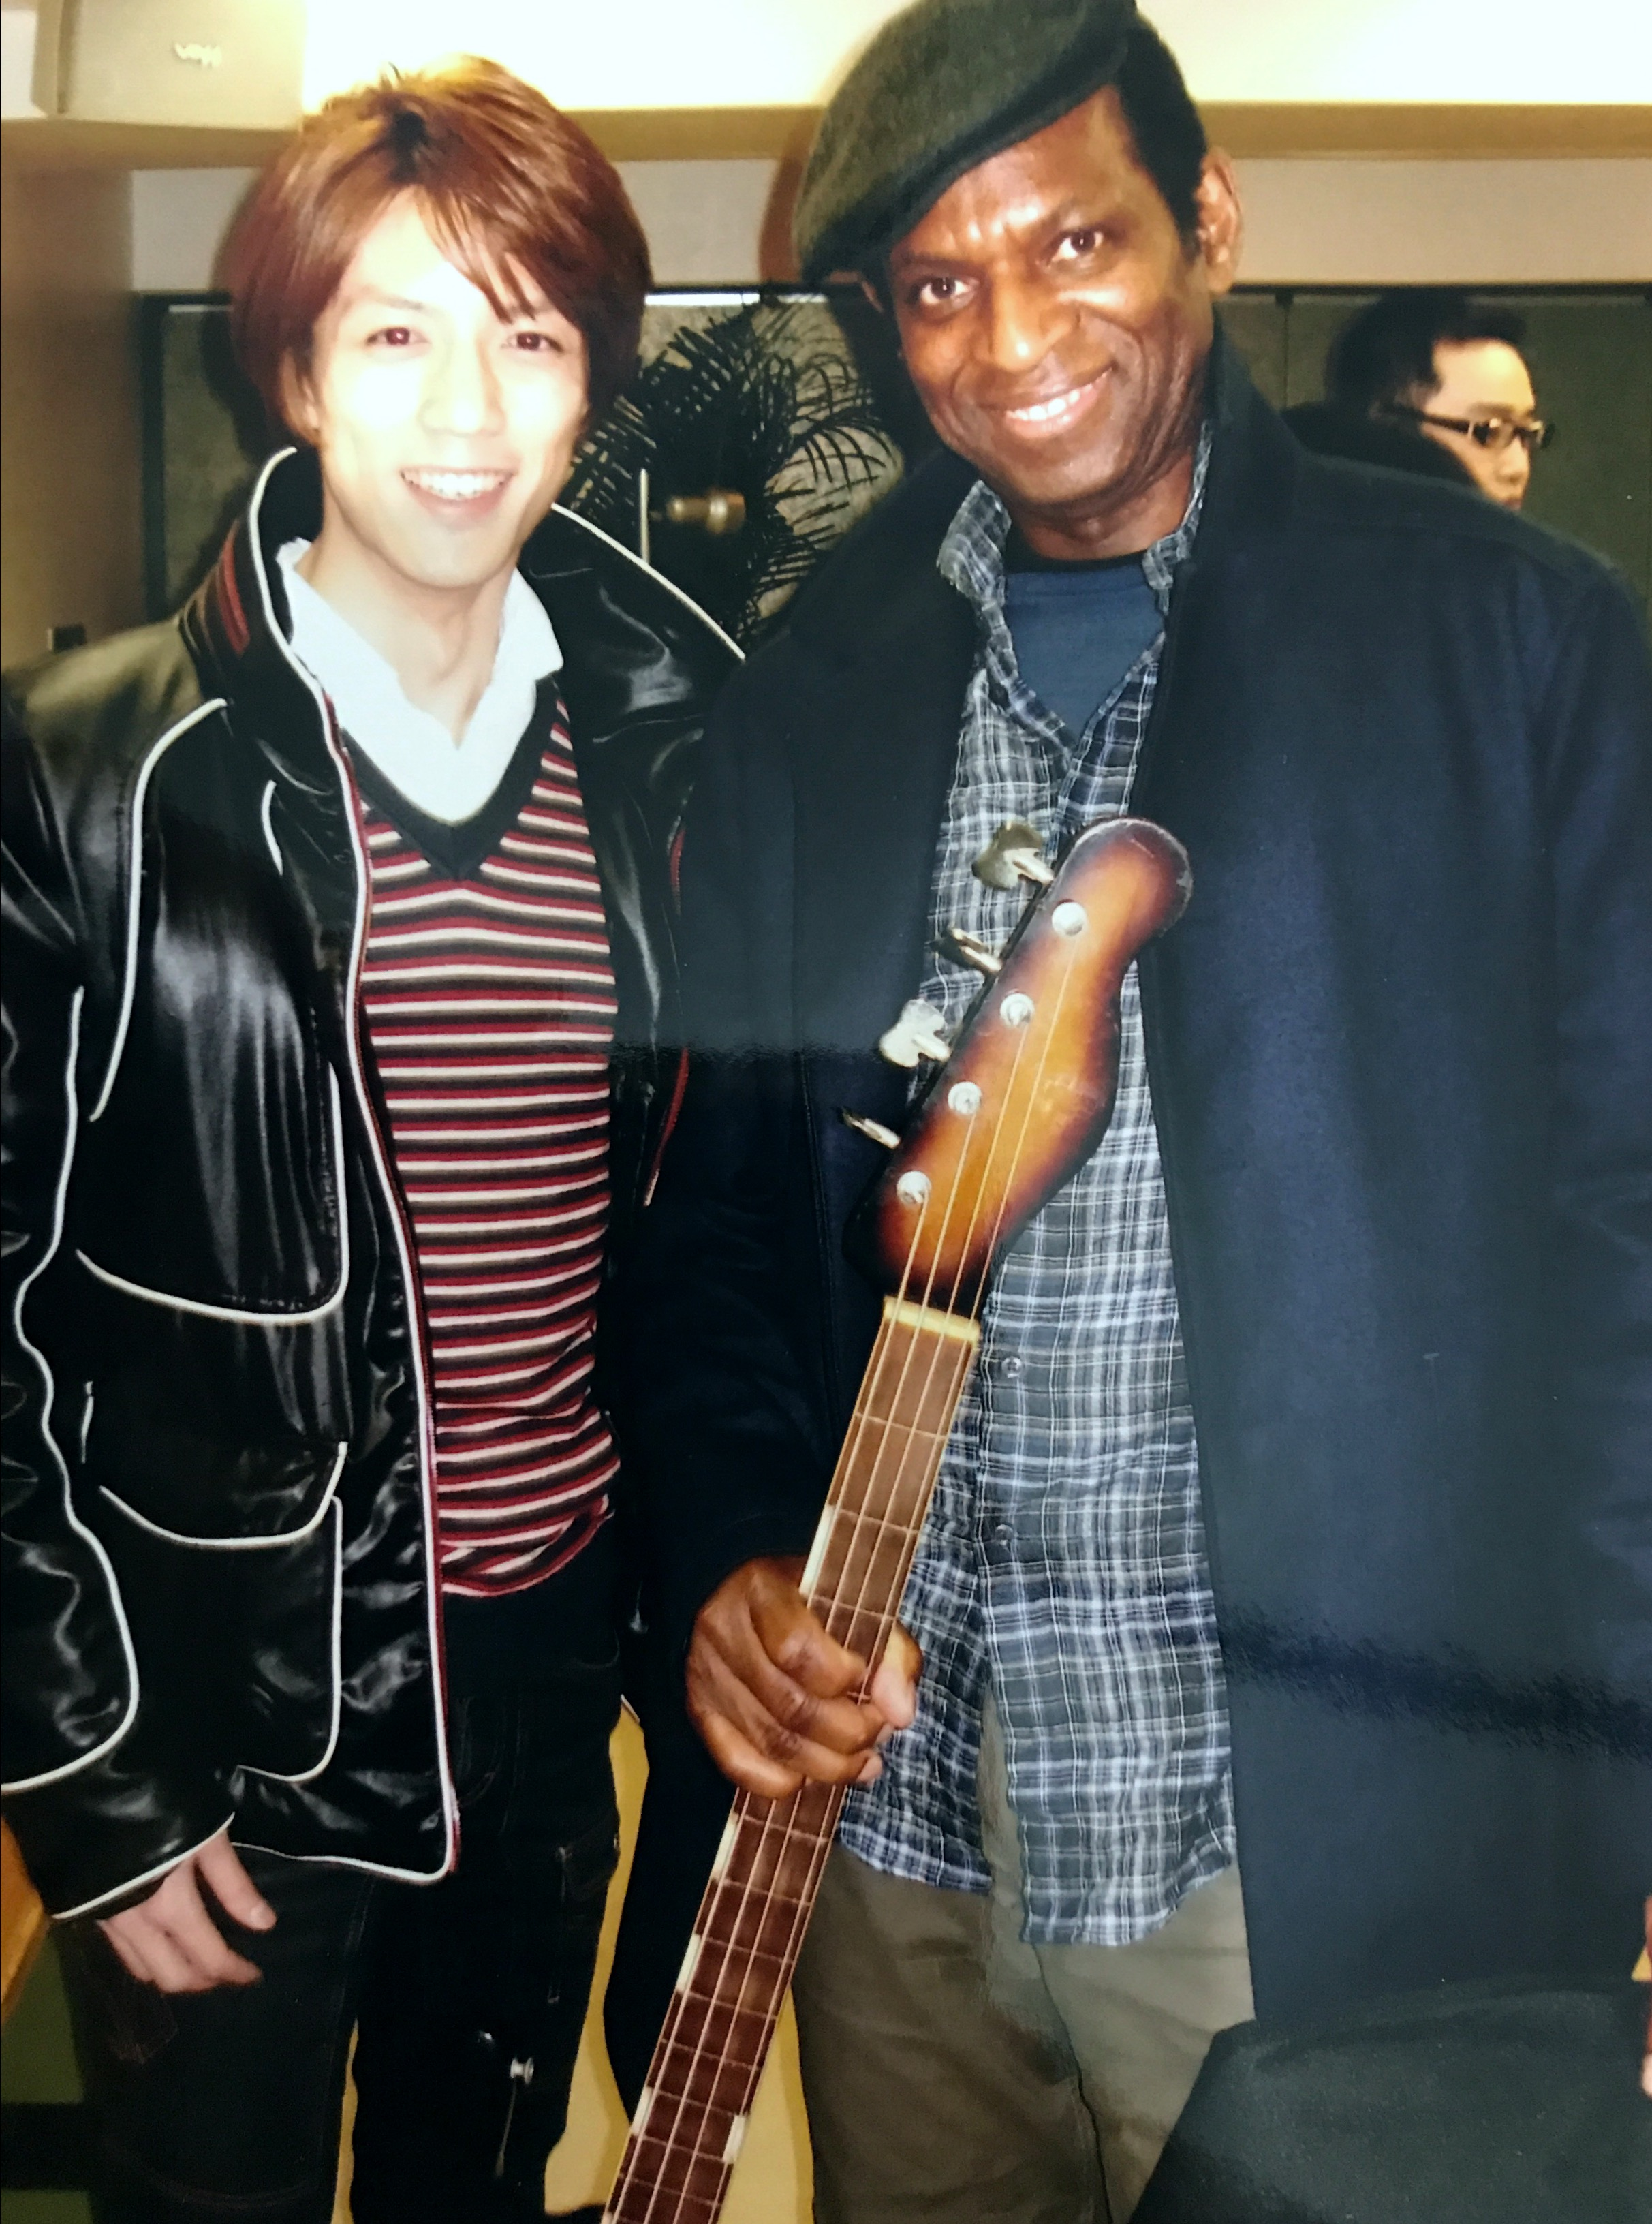 Kento Handa with Willie Weeks